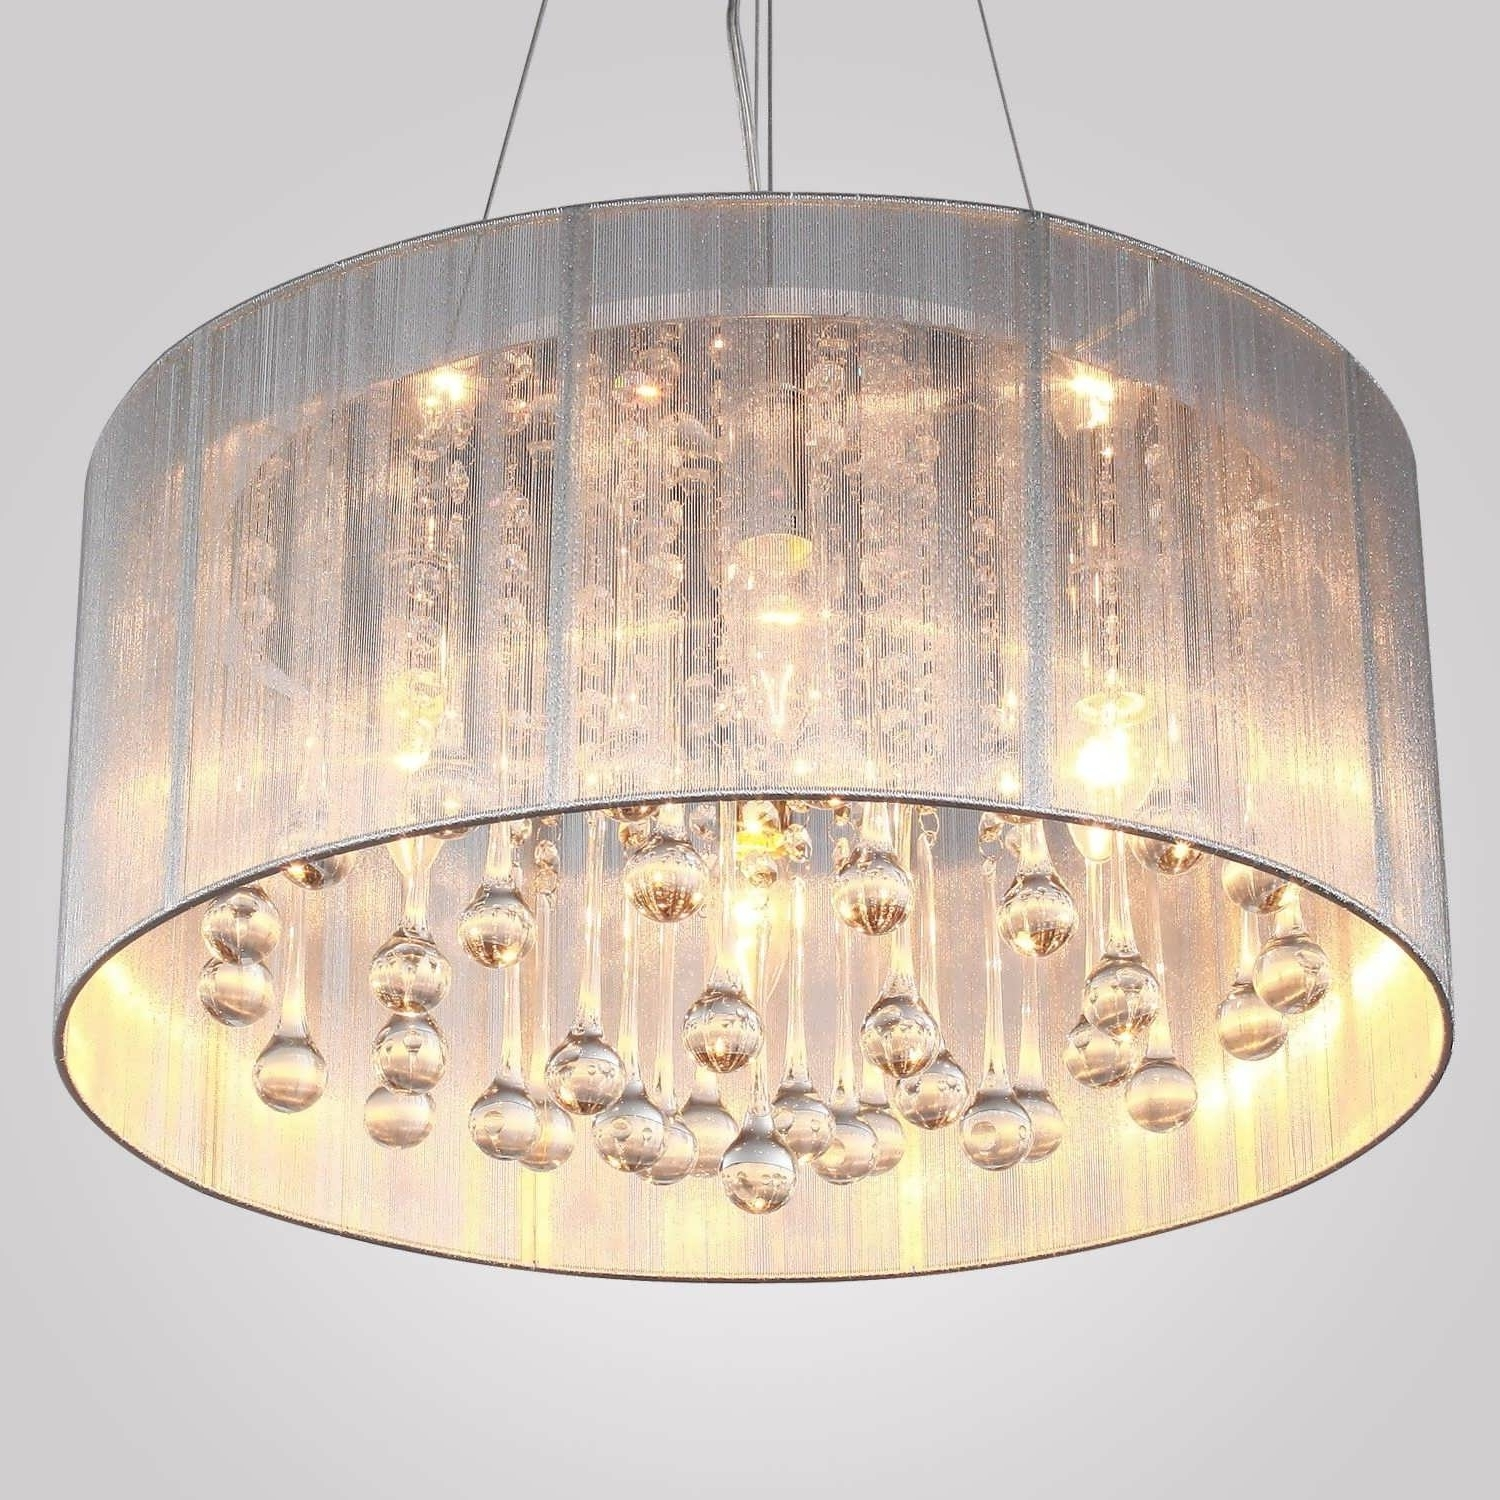 Well Liked Clip On Drum Chandelier Shades Intended For Chandeliers Design : Magnificent Best Clip On Drum Chandelier Shades (View 20 of 20)